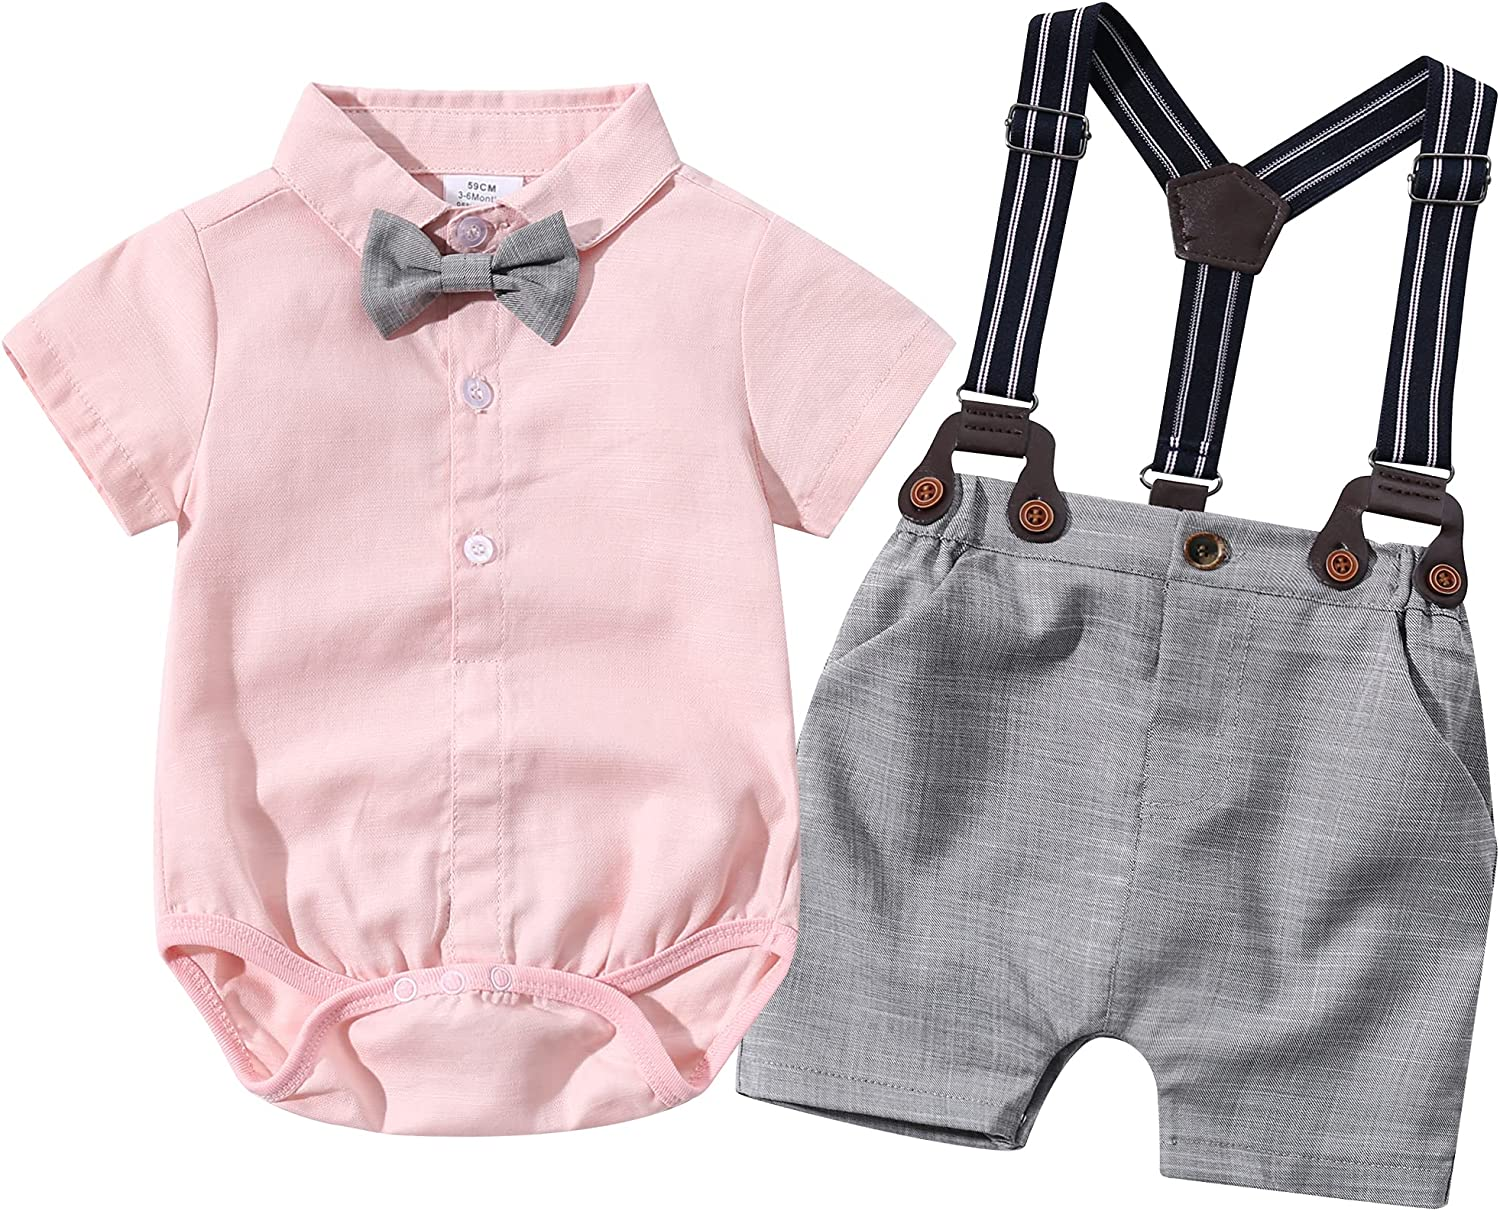 Baby Boys Gentleman Outfits Suits Infant Tampa Mall Oklahoma City Mall Short Shorts Sleeve Ov